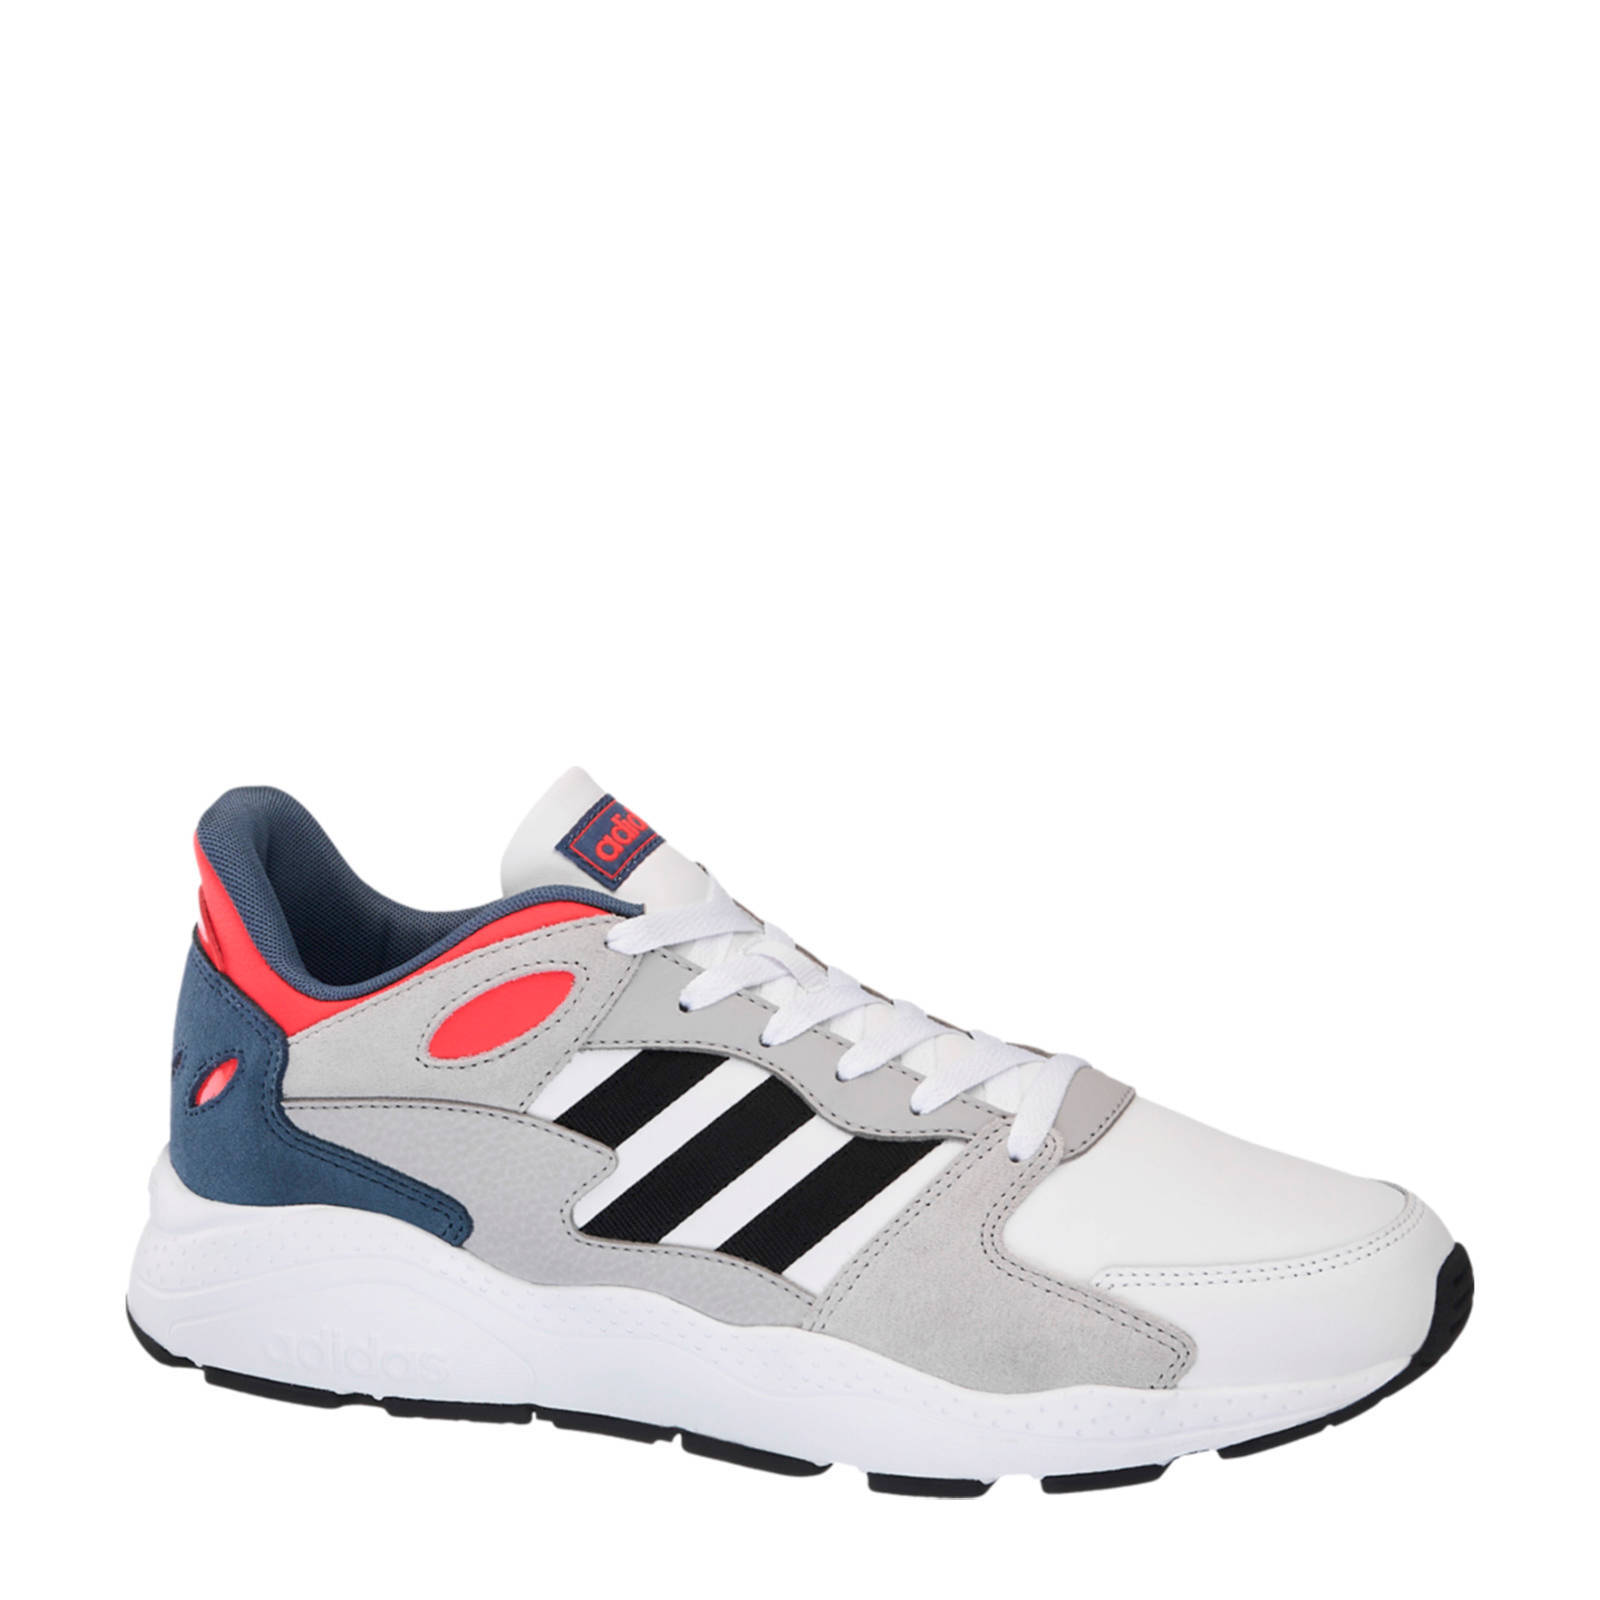 promo code 31b29 65736 adidas-chaos-sneakers-grijs-wit-rood-wit-4061616381064.jpg